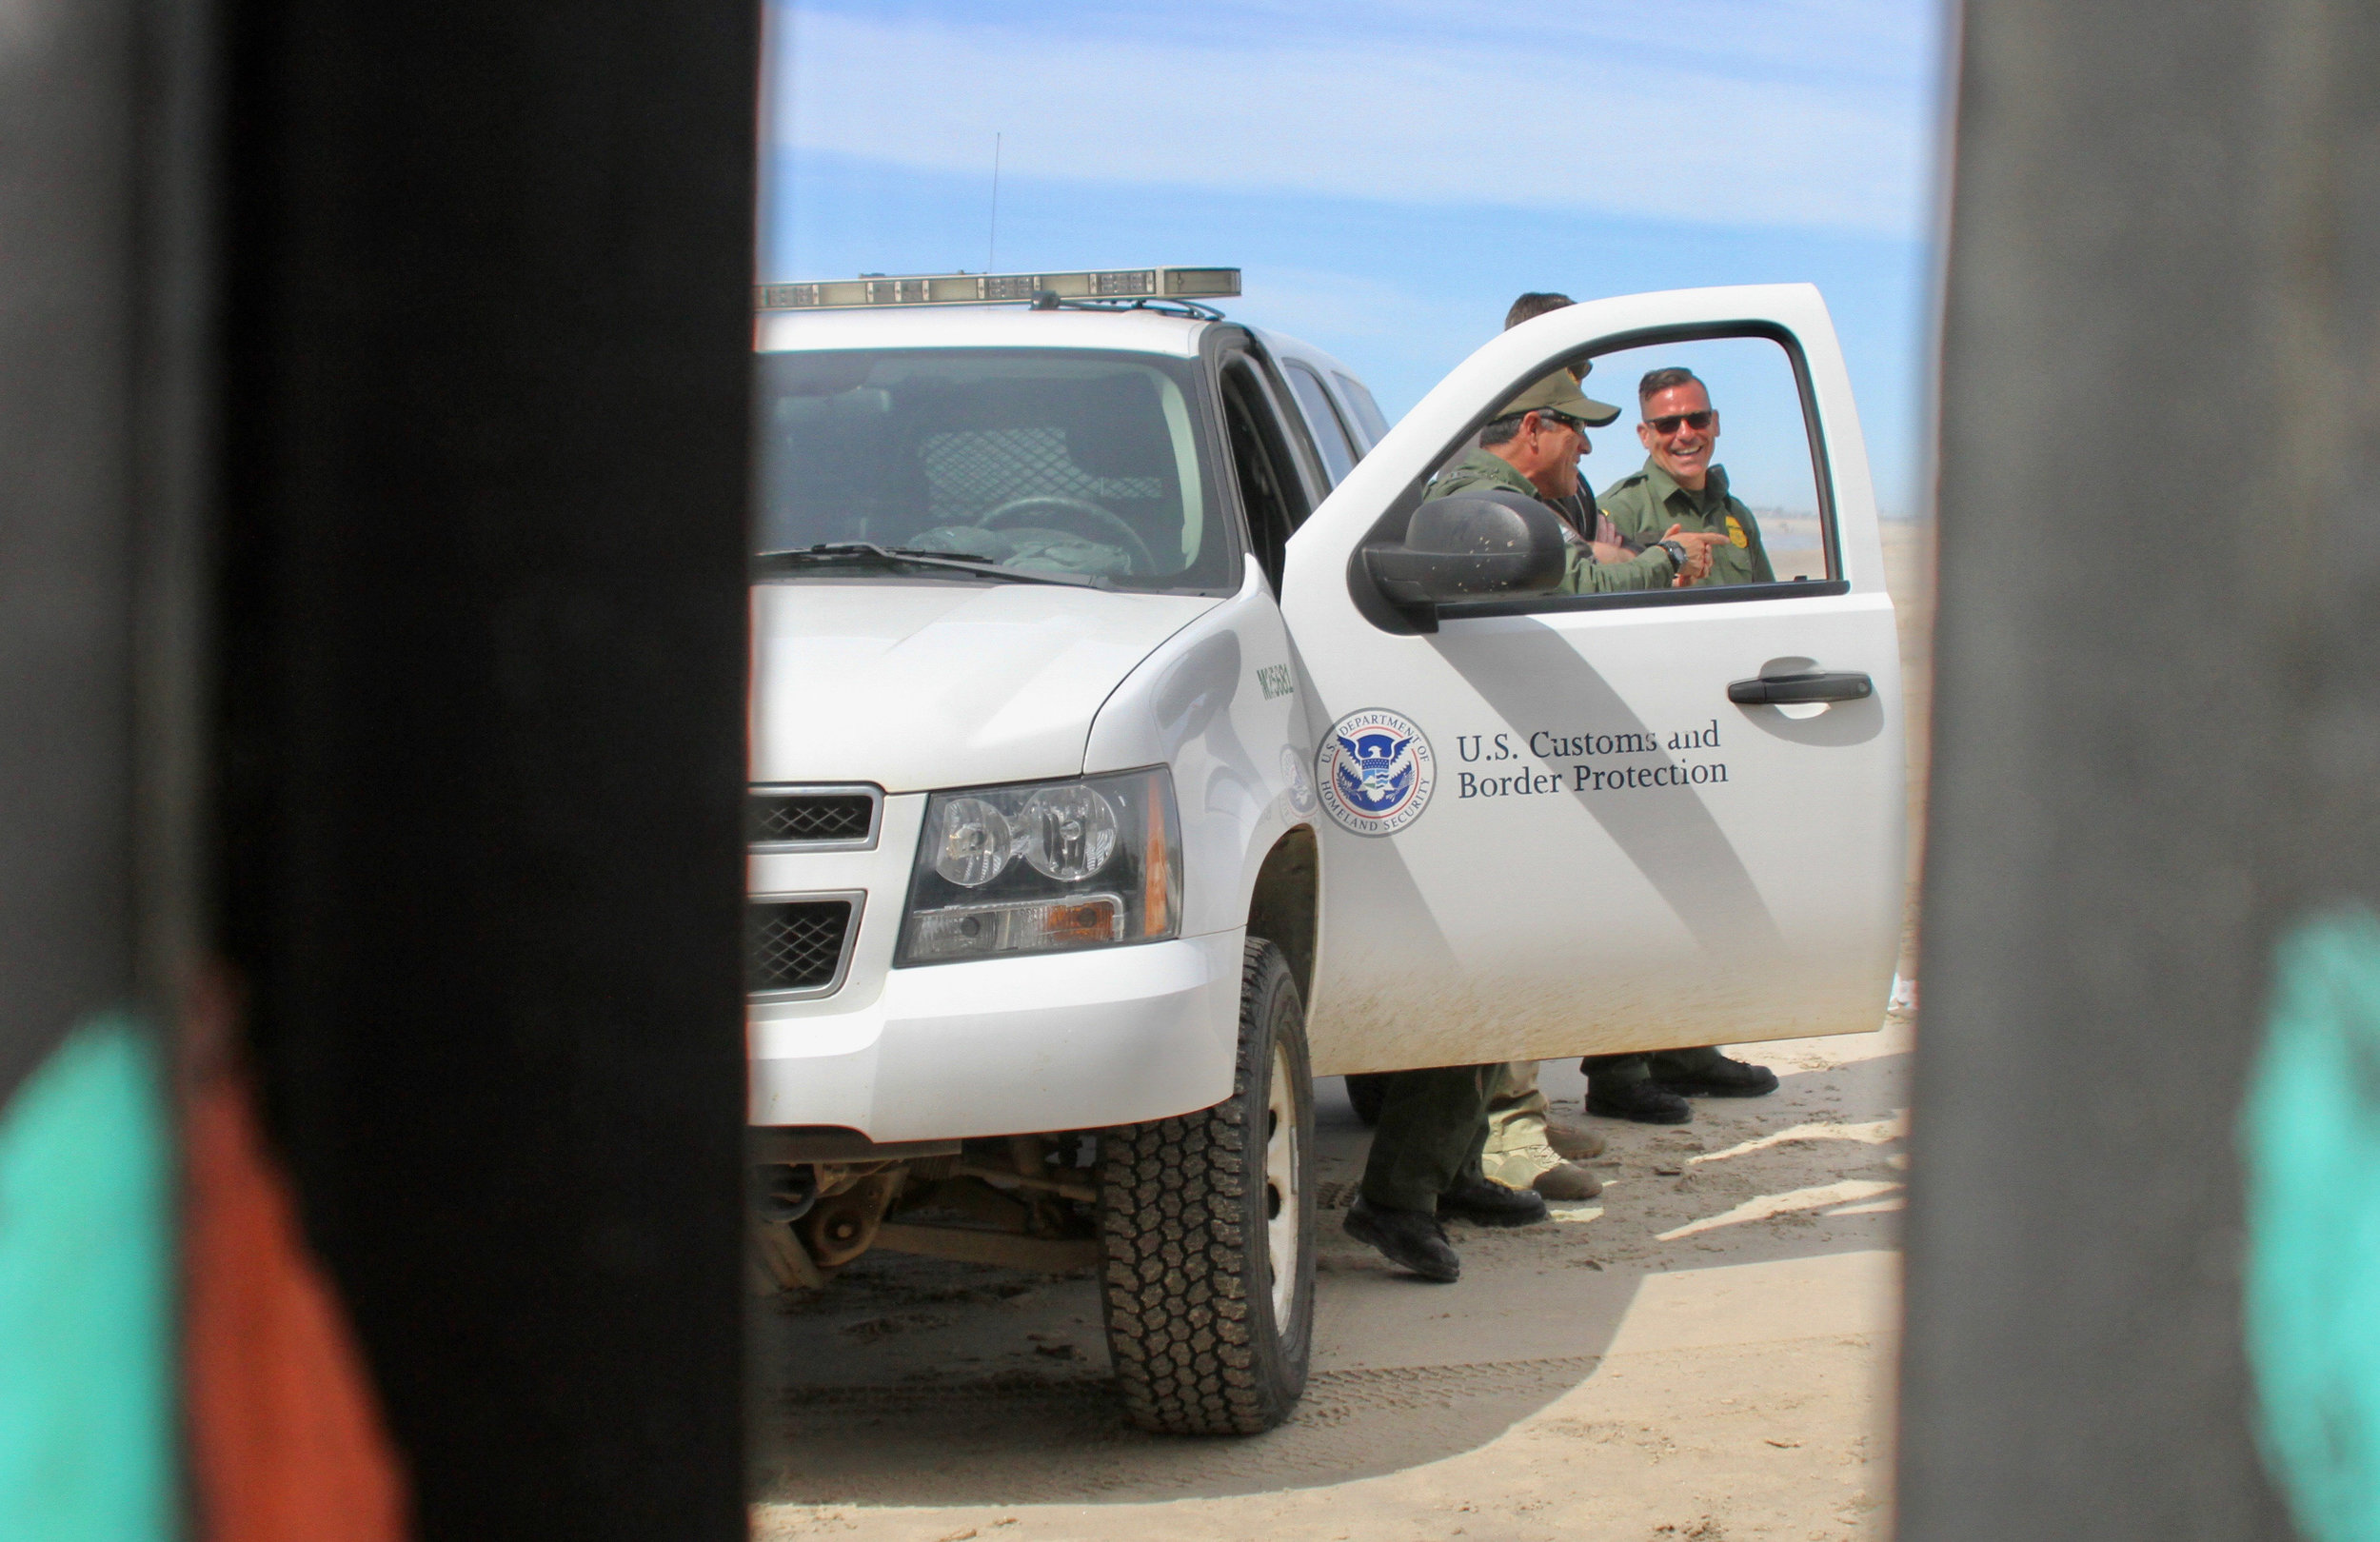 Three Border Patrol agents laughing and standing by a patrol car as construction along the border wall in Playas De Tijuana took place in Playas de Tijuana on Friday, March 15, 2019 in Tijuana, Mexico. The construction on this section of the border wall comes after two different incidents of significantly large groups of migrants crossing through the border wall between gaps and openings on Thursday, March 14 and on Friday, March 15.( Ryanne Mena / The Corsair )